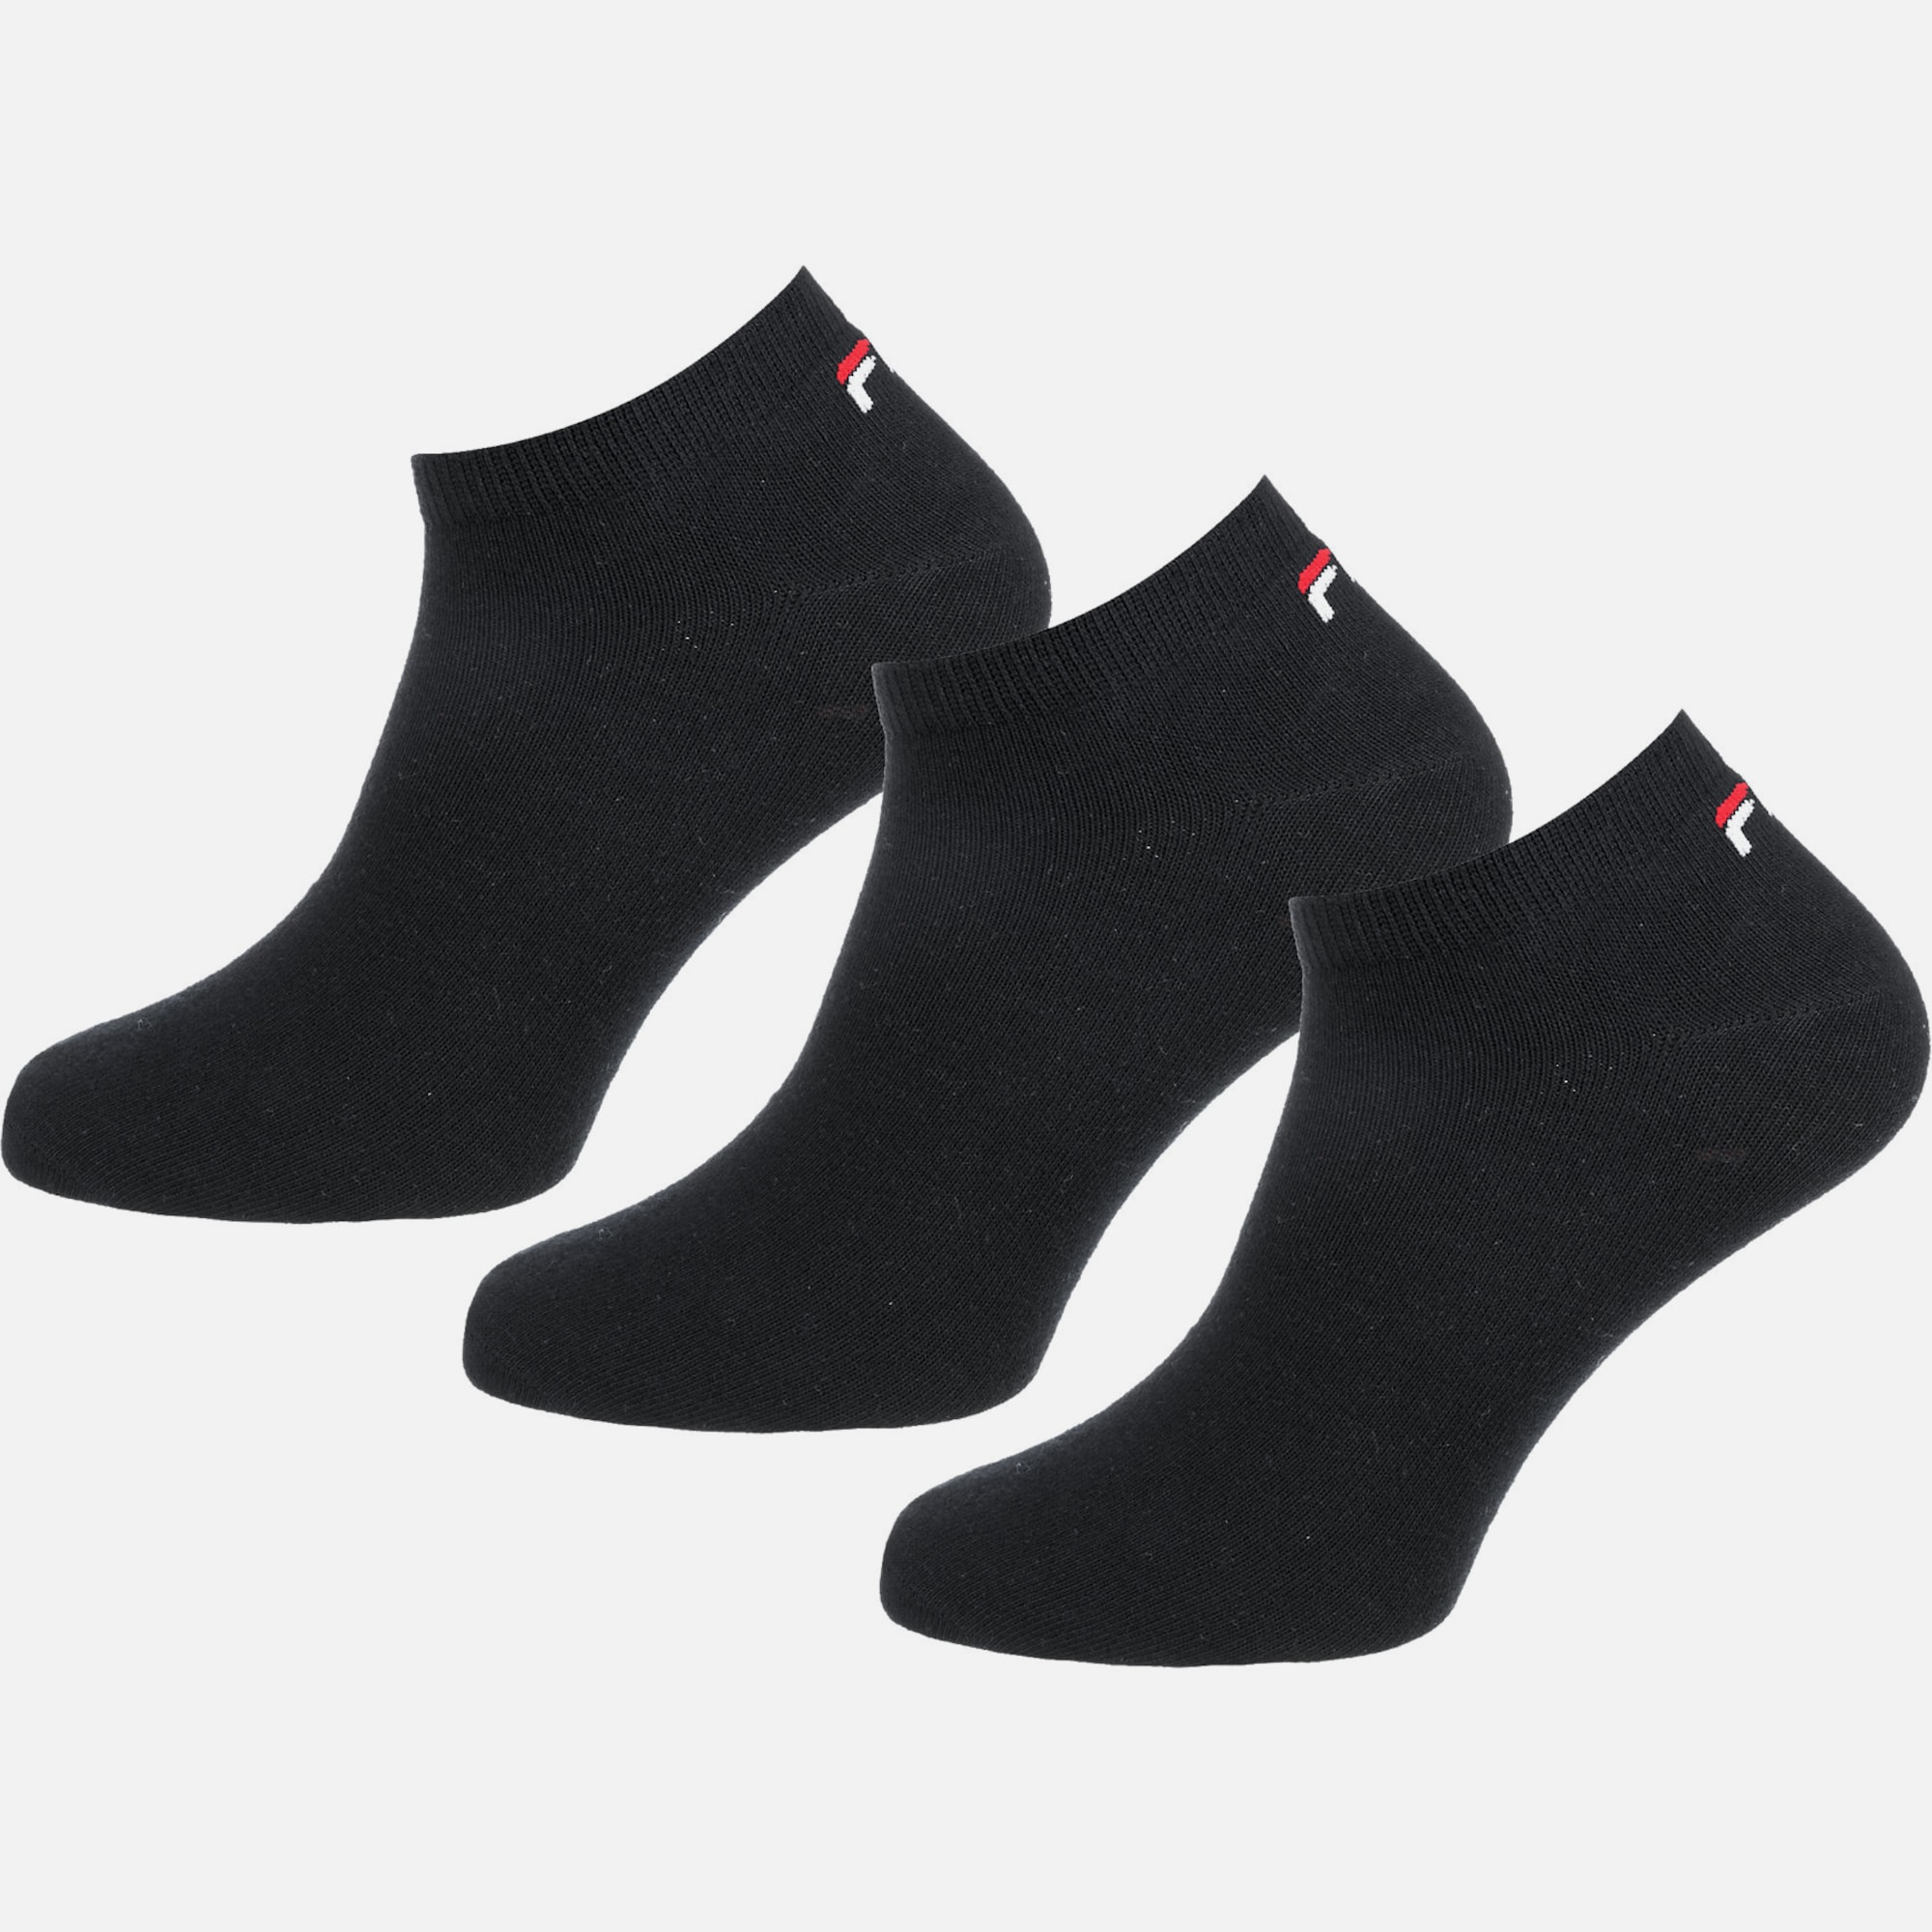 fila sneaker socken 3 paar in schwarz about you. Black Bedroom Furniture Sets. Home Design Ideas